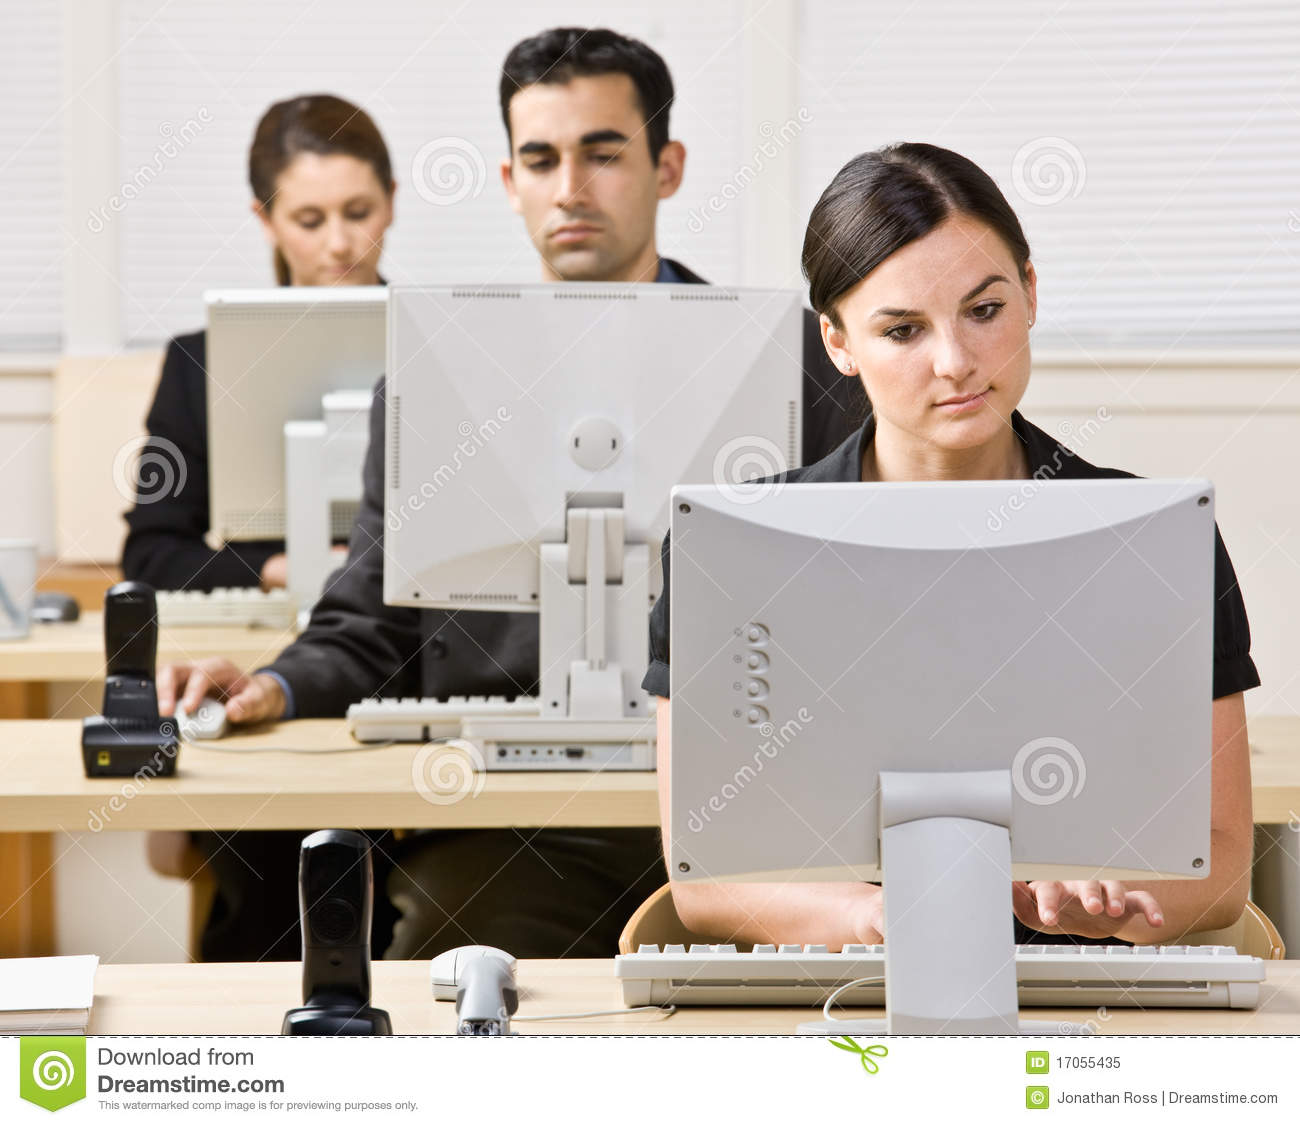 Business People Working On Computers Stock Image - Image ...